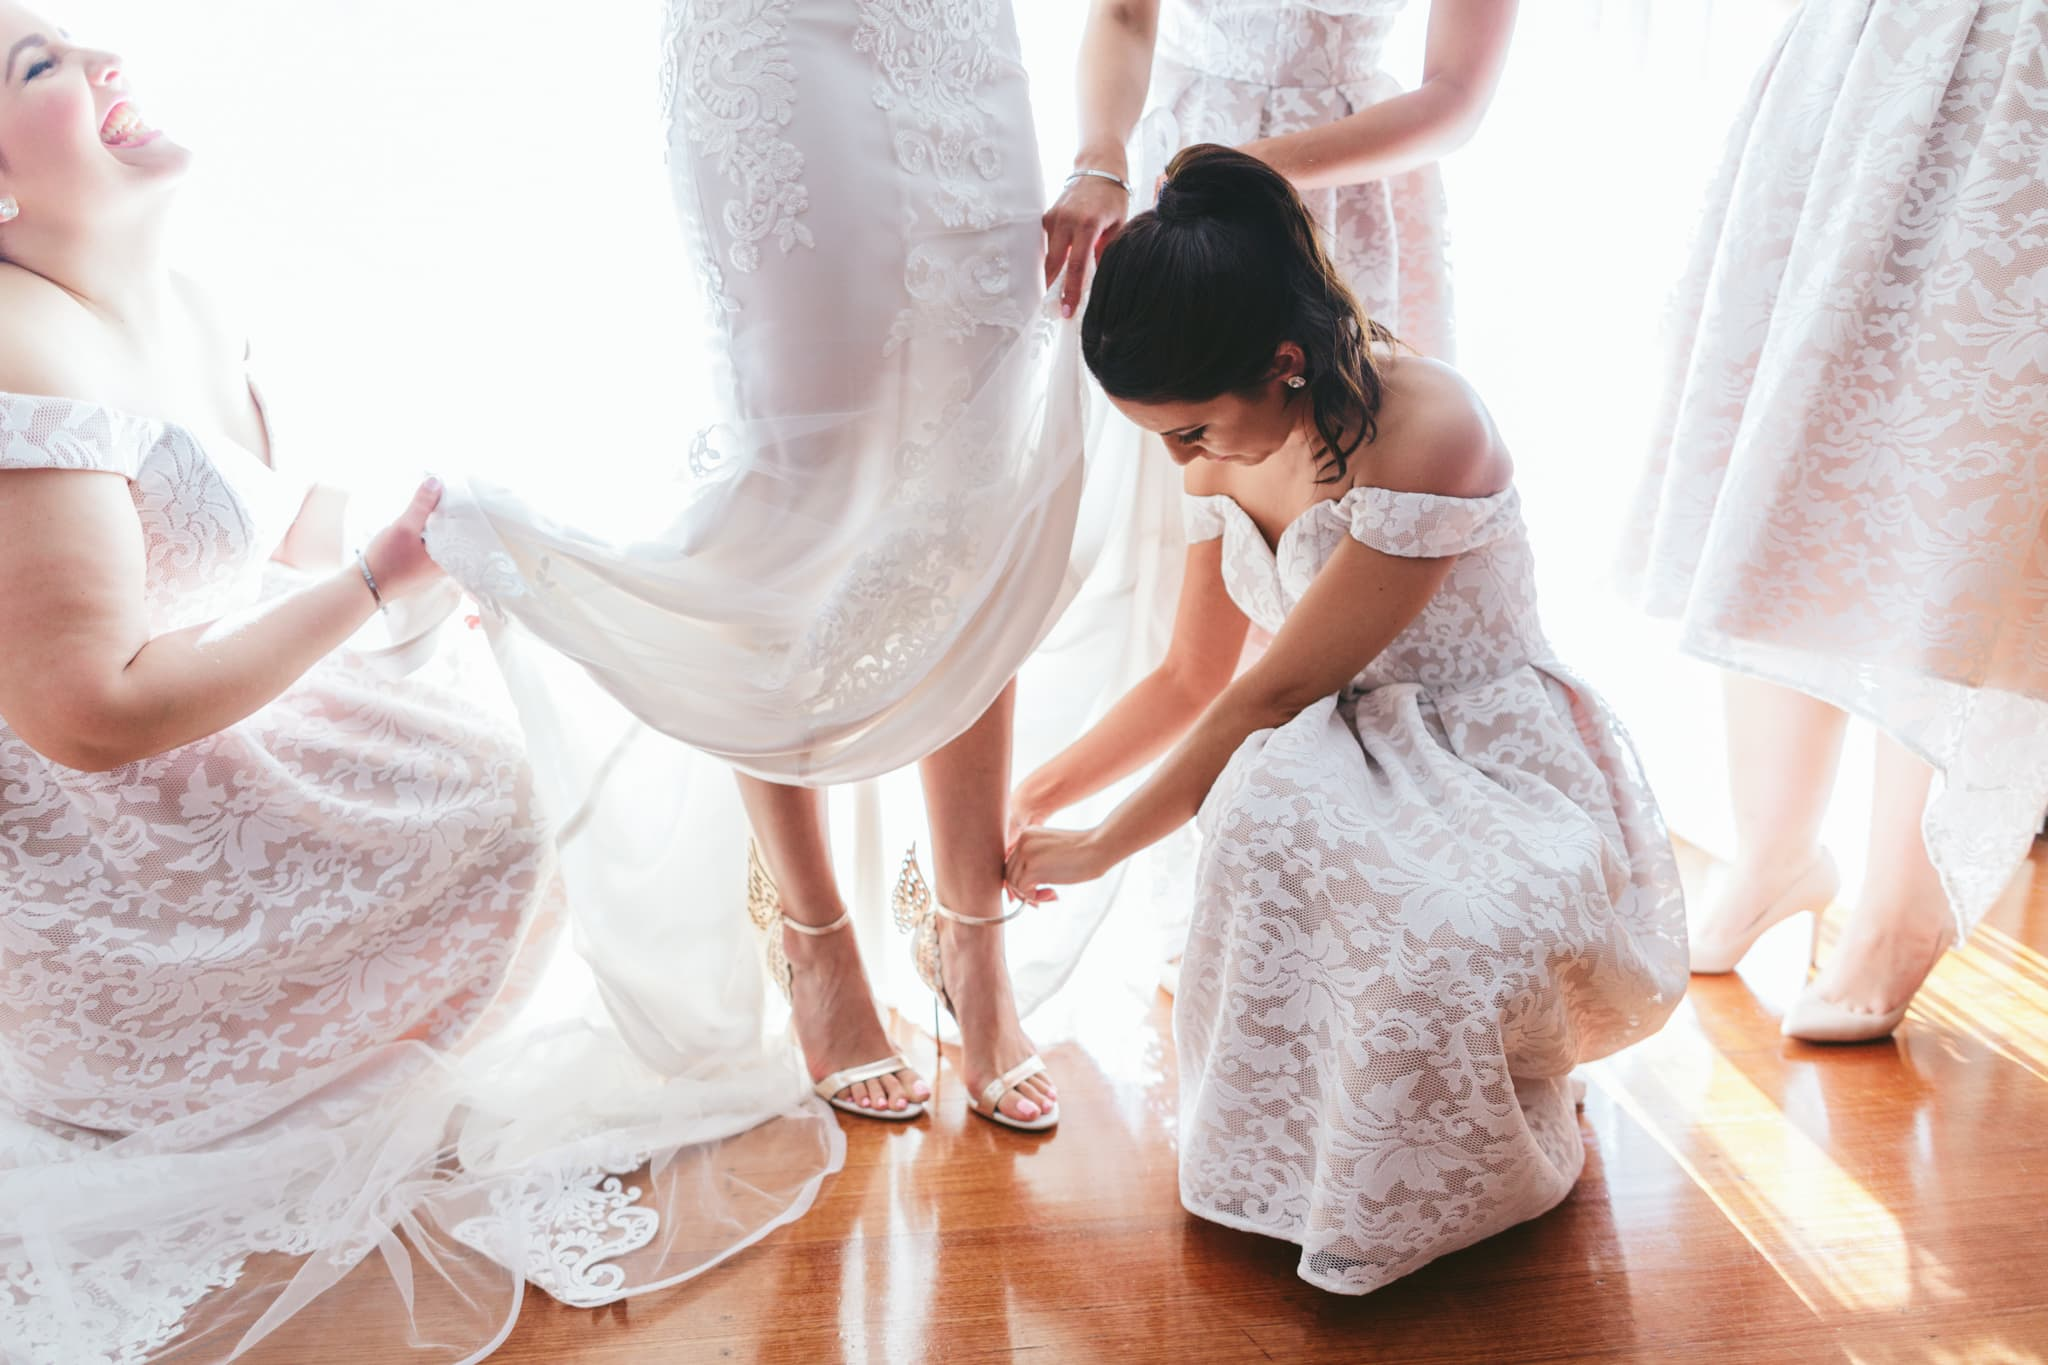 bridesmaids help the bride getting dressed - wedding photographer captures the day